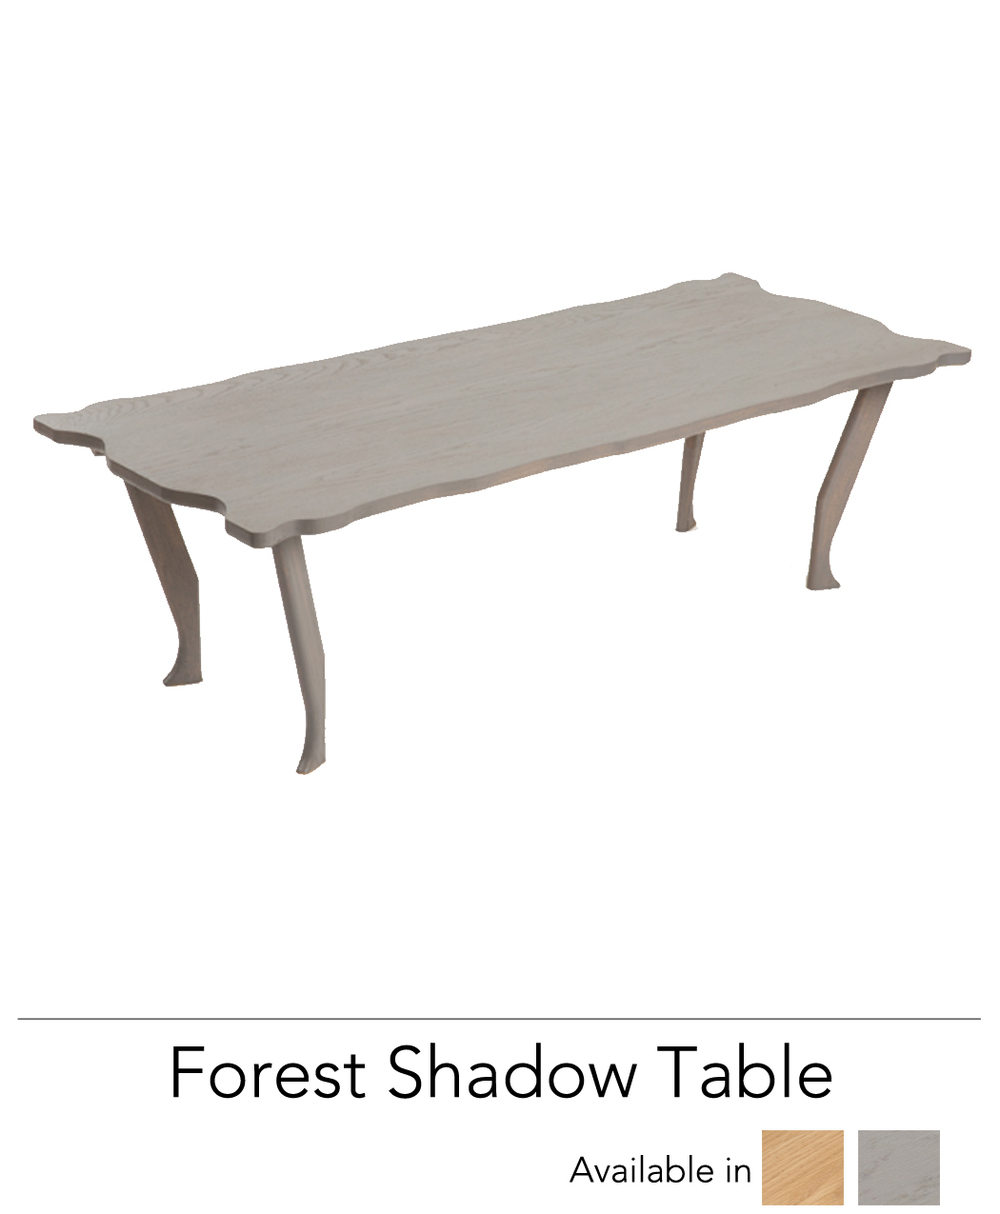 Forest Shadow Table Front New.jpg